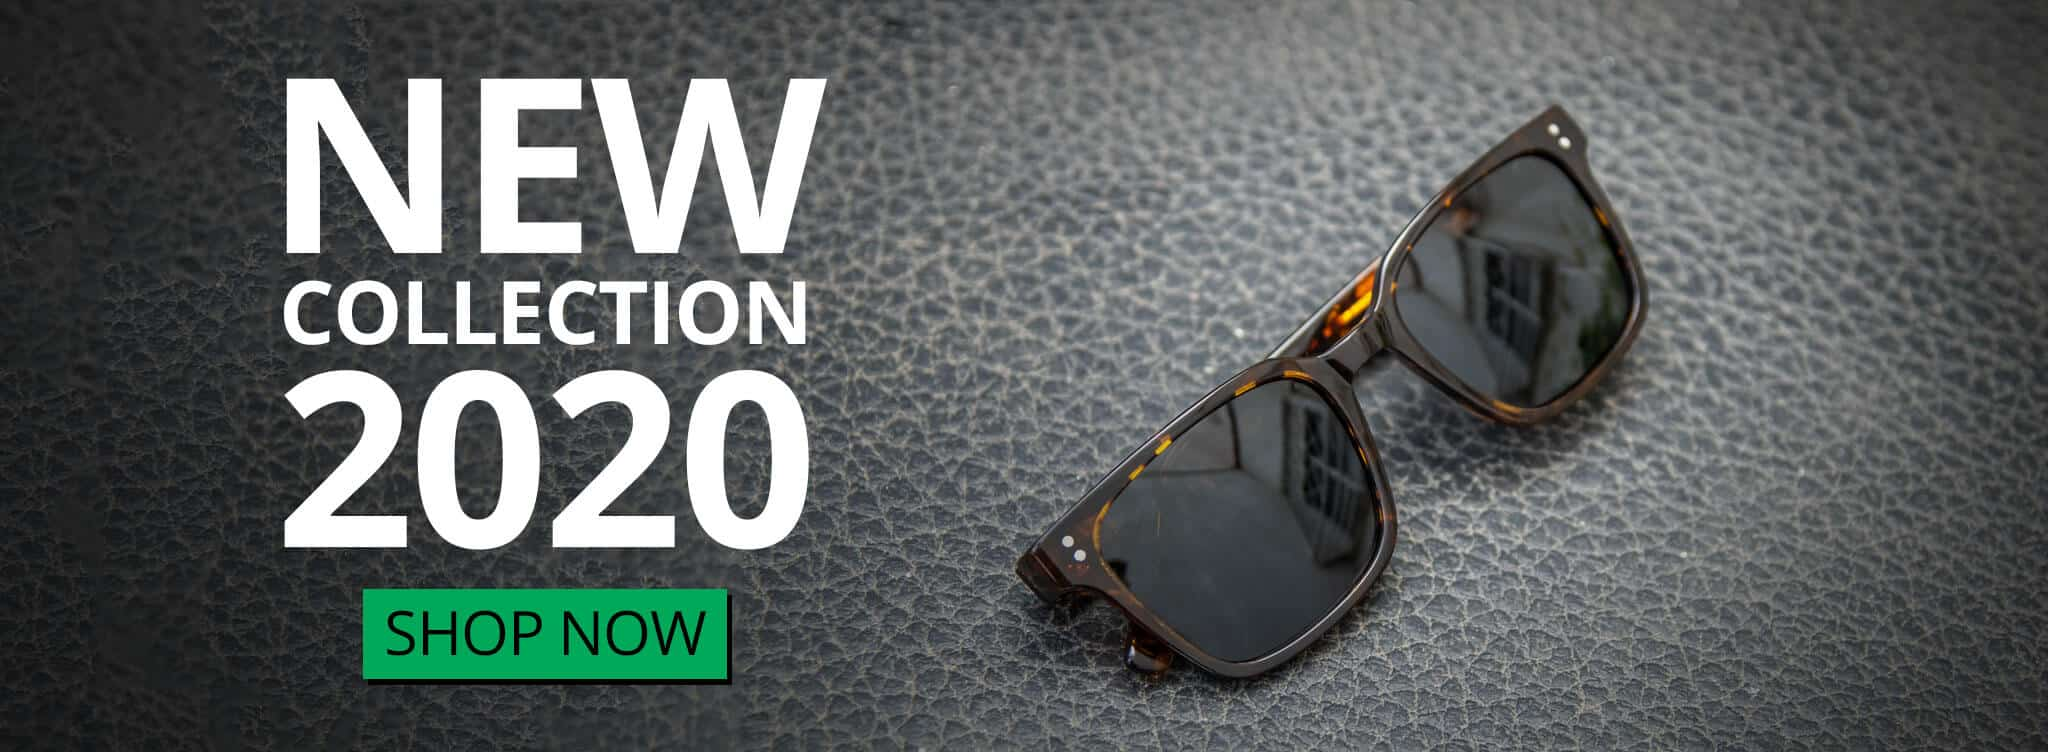 Mr. Woodini - New Collection 2020